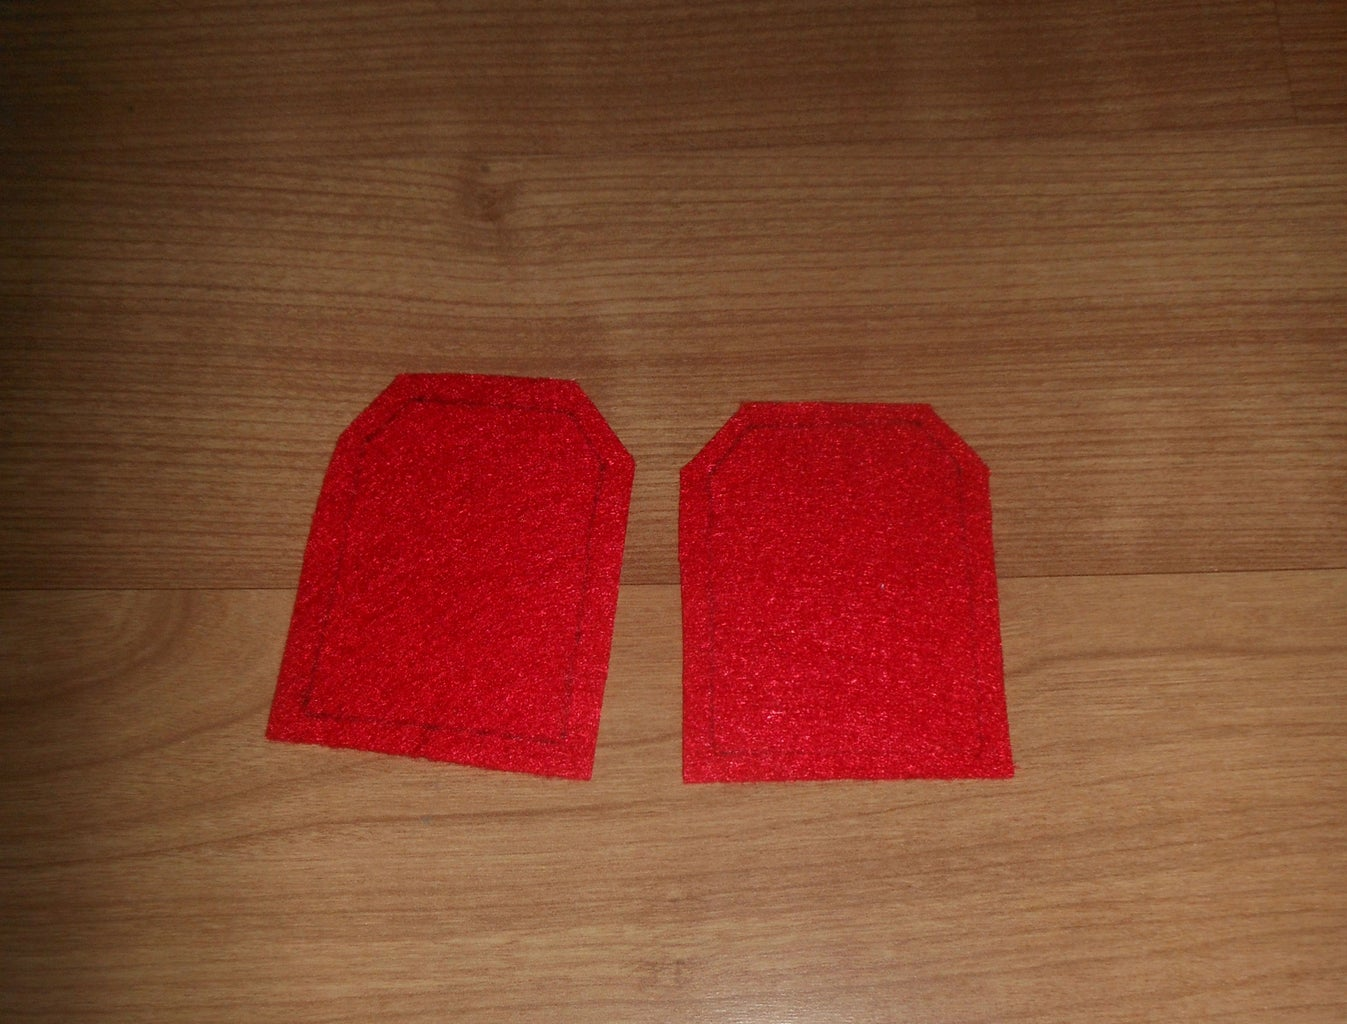 Take the Felt Fabric and Cut It Like the Picture. the Size of the Rectangle Is 5cm and 6cm.